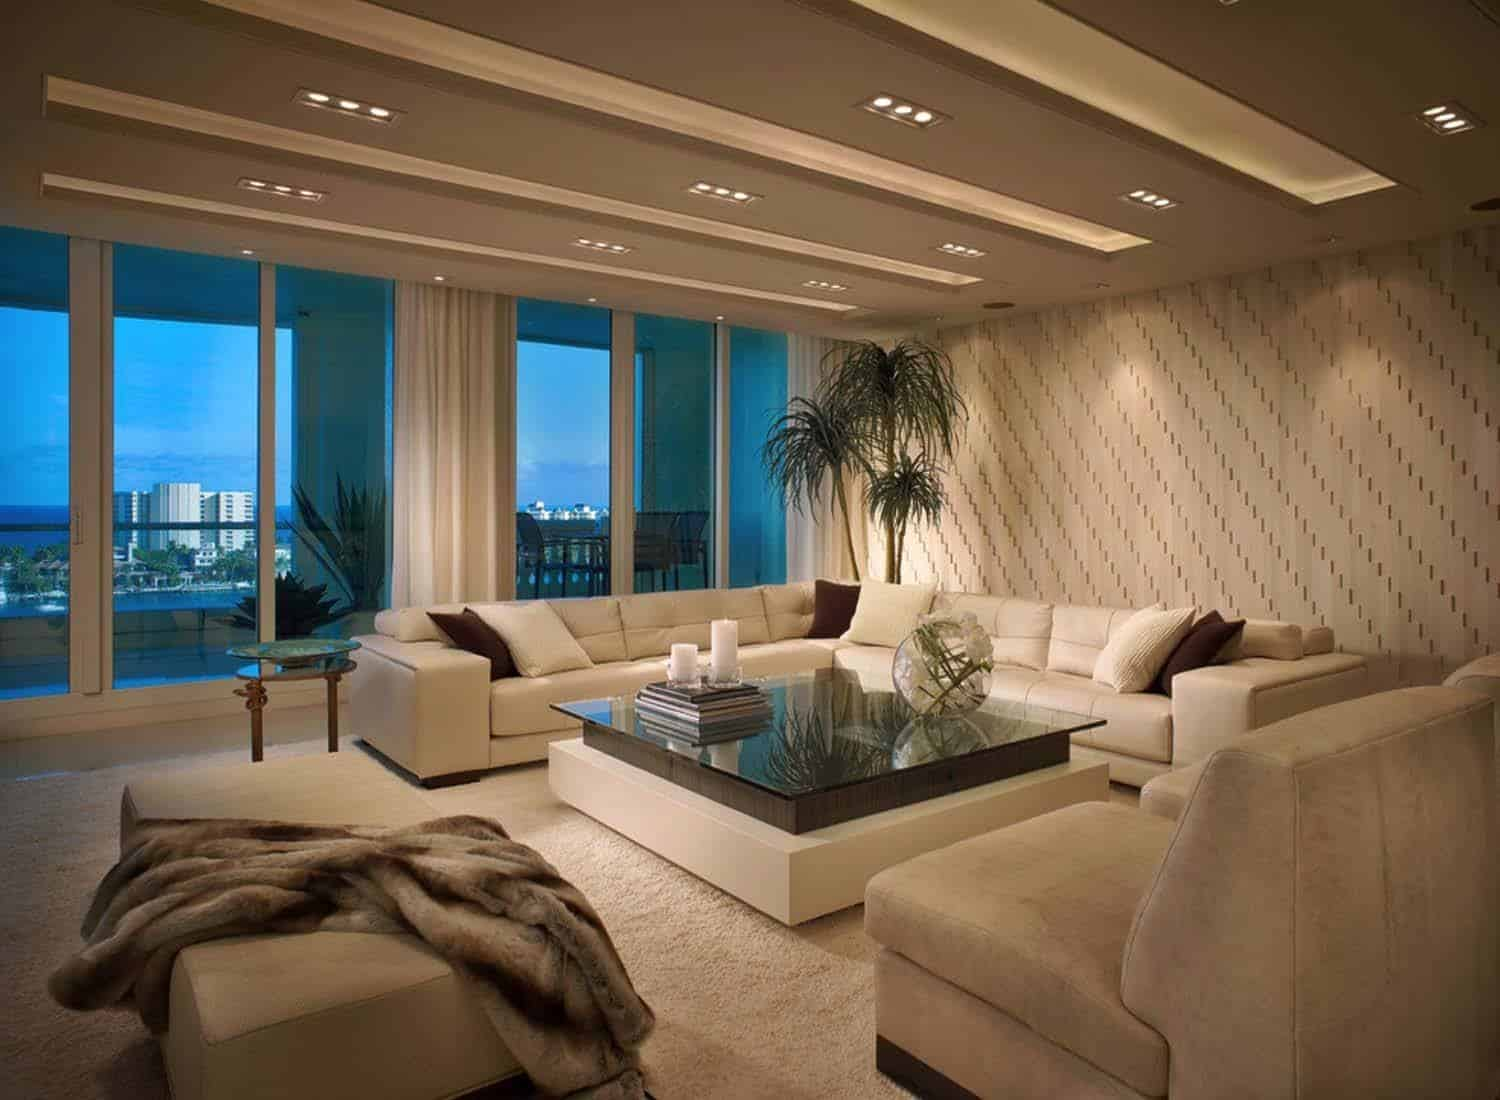 Contemporary Residence-Interiors by Steven G-01-1 Kindesign